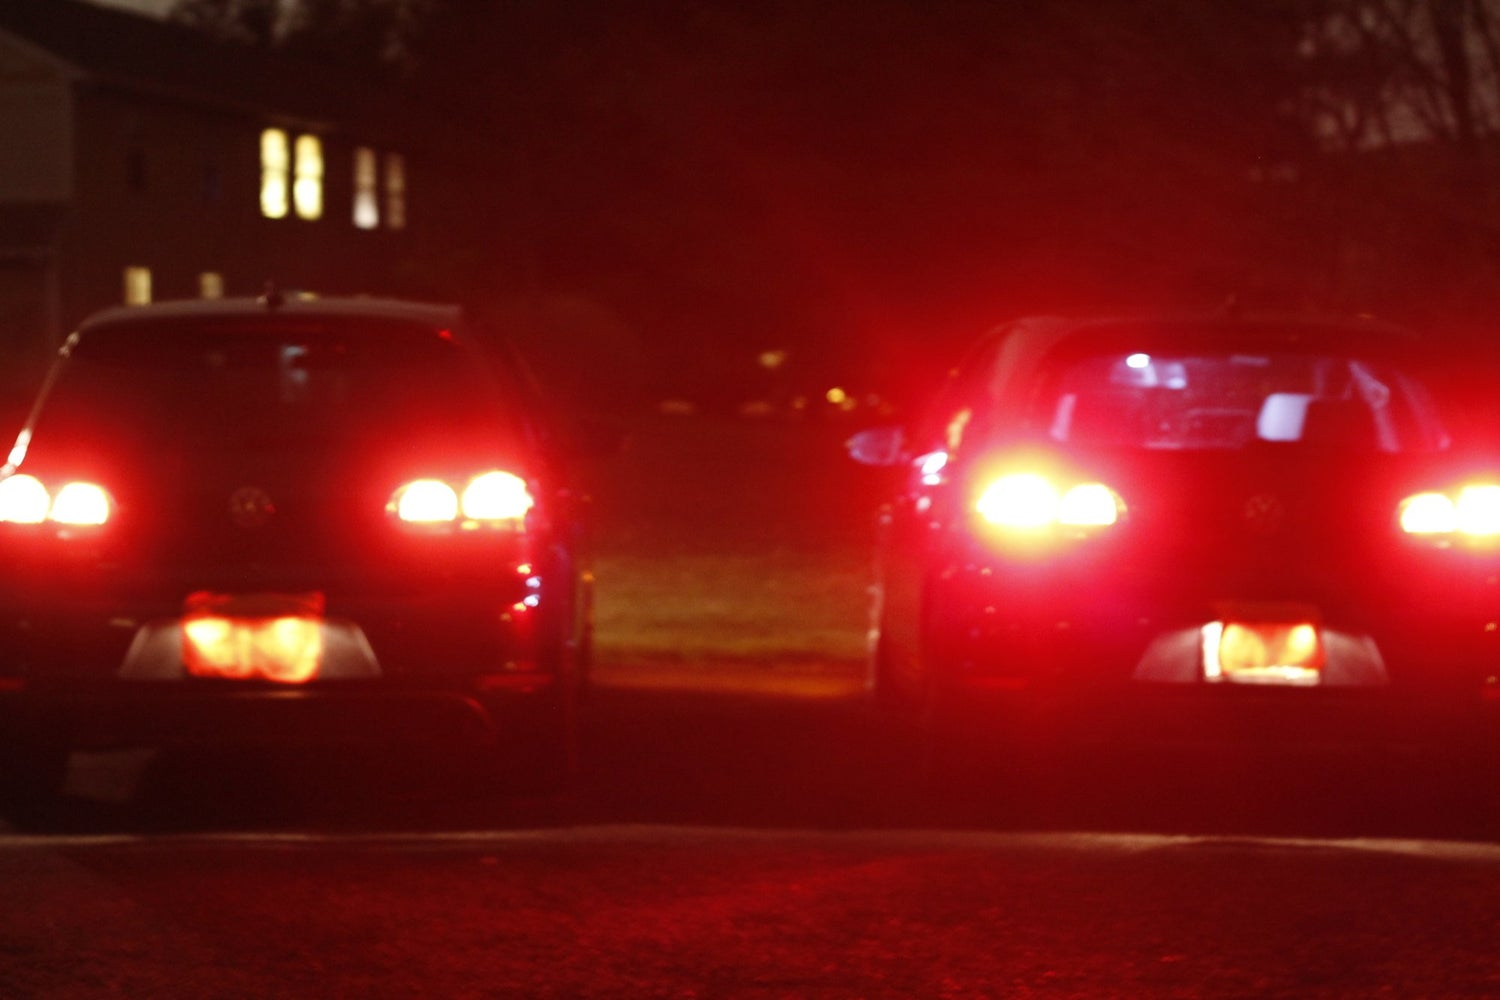 Image of *NEW* LED BRAKE Super Bright Red fits: Volkswagen MK4 & MK5 Jetta / GTI / Golf / .:r32